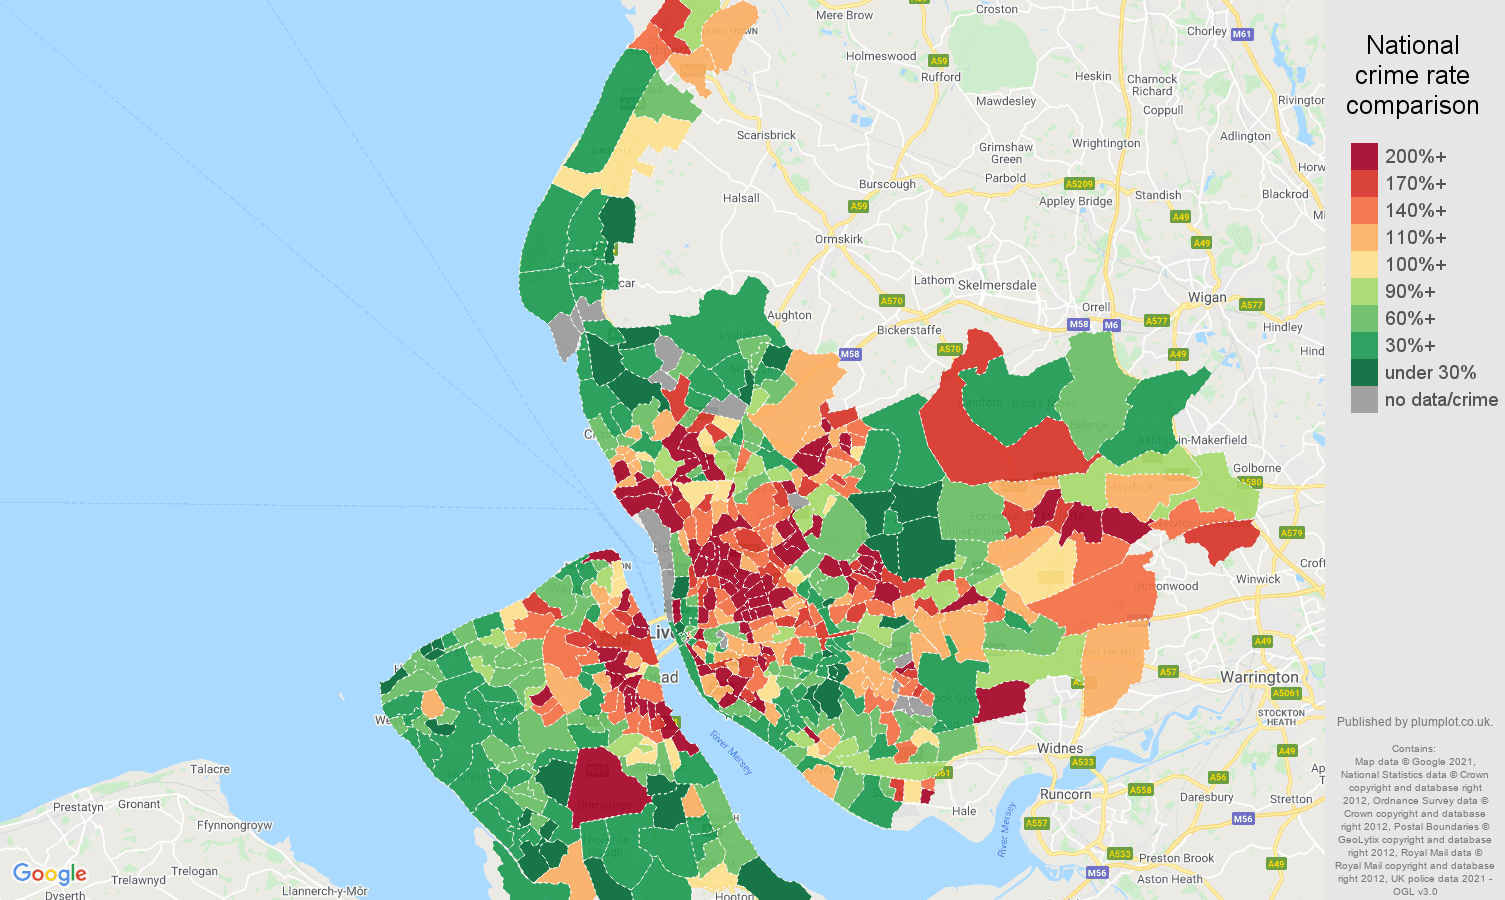 Merseyside violent crime rate comparison map